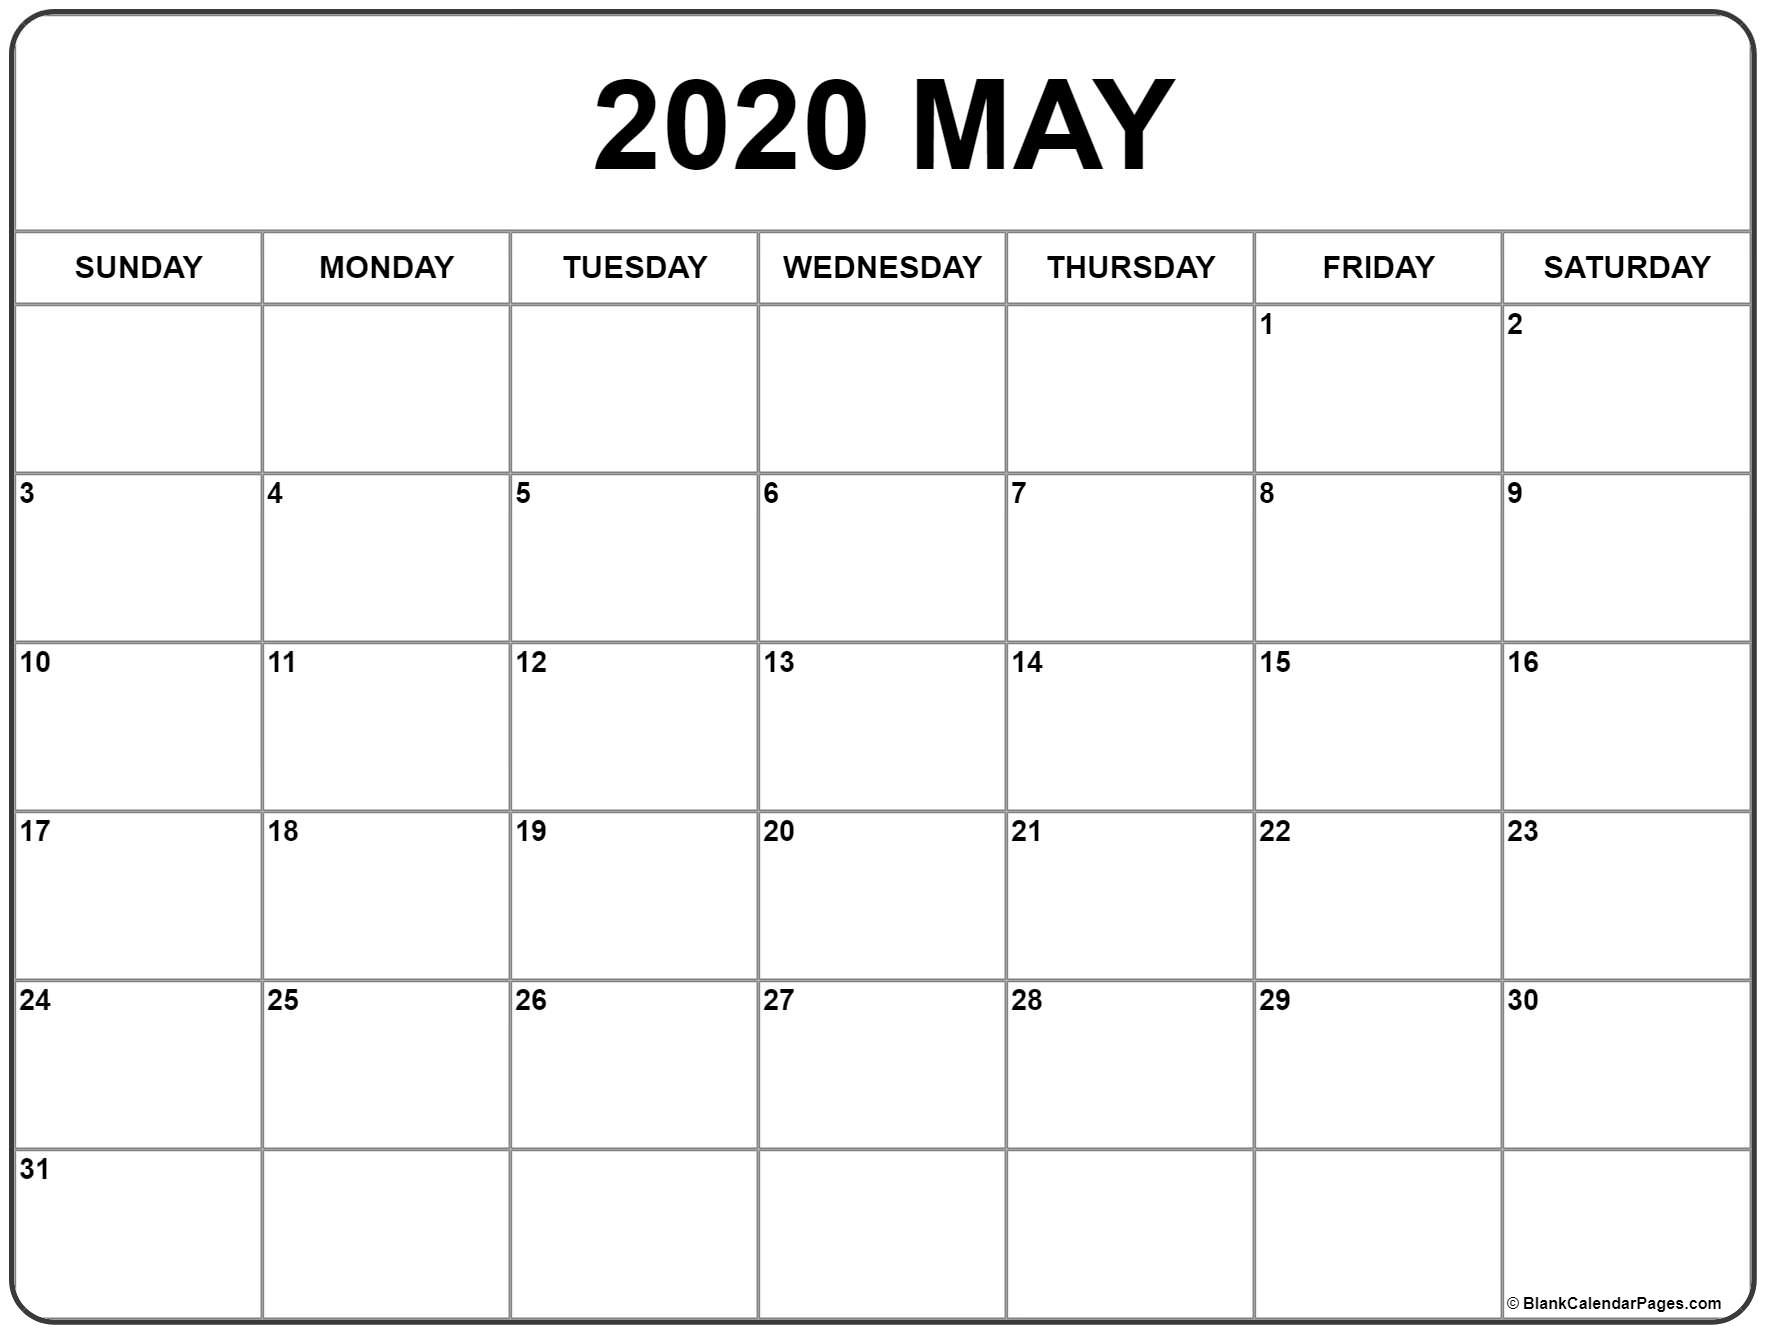 May 2020 Calendar | Free Printable Monthly Calendars  Full Page Blank Calendar Printable